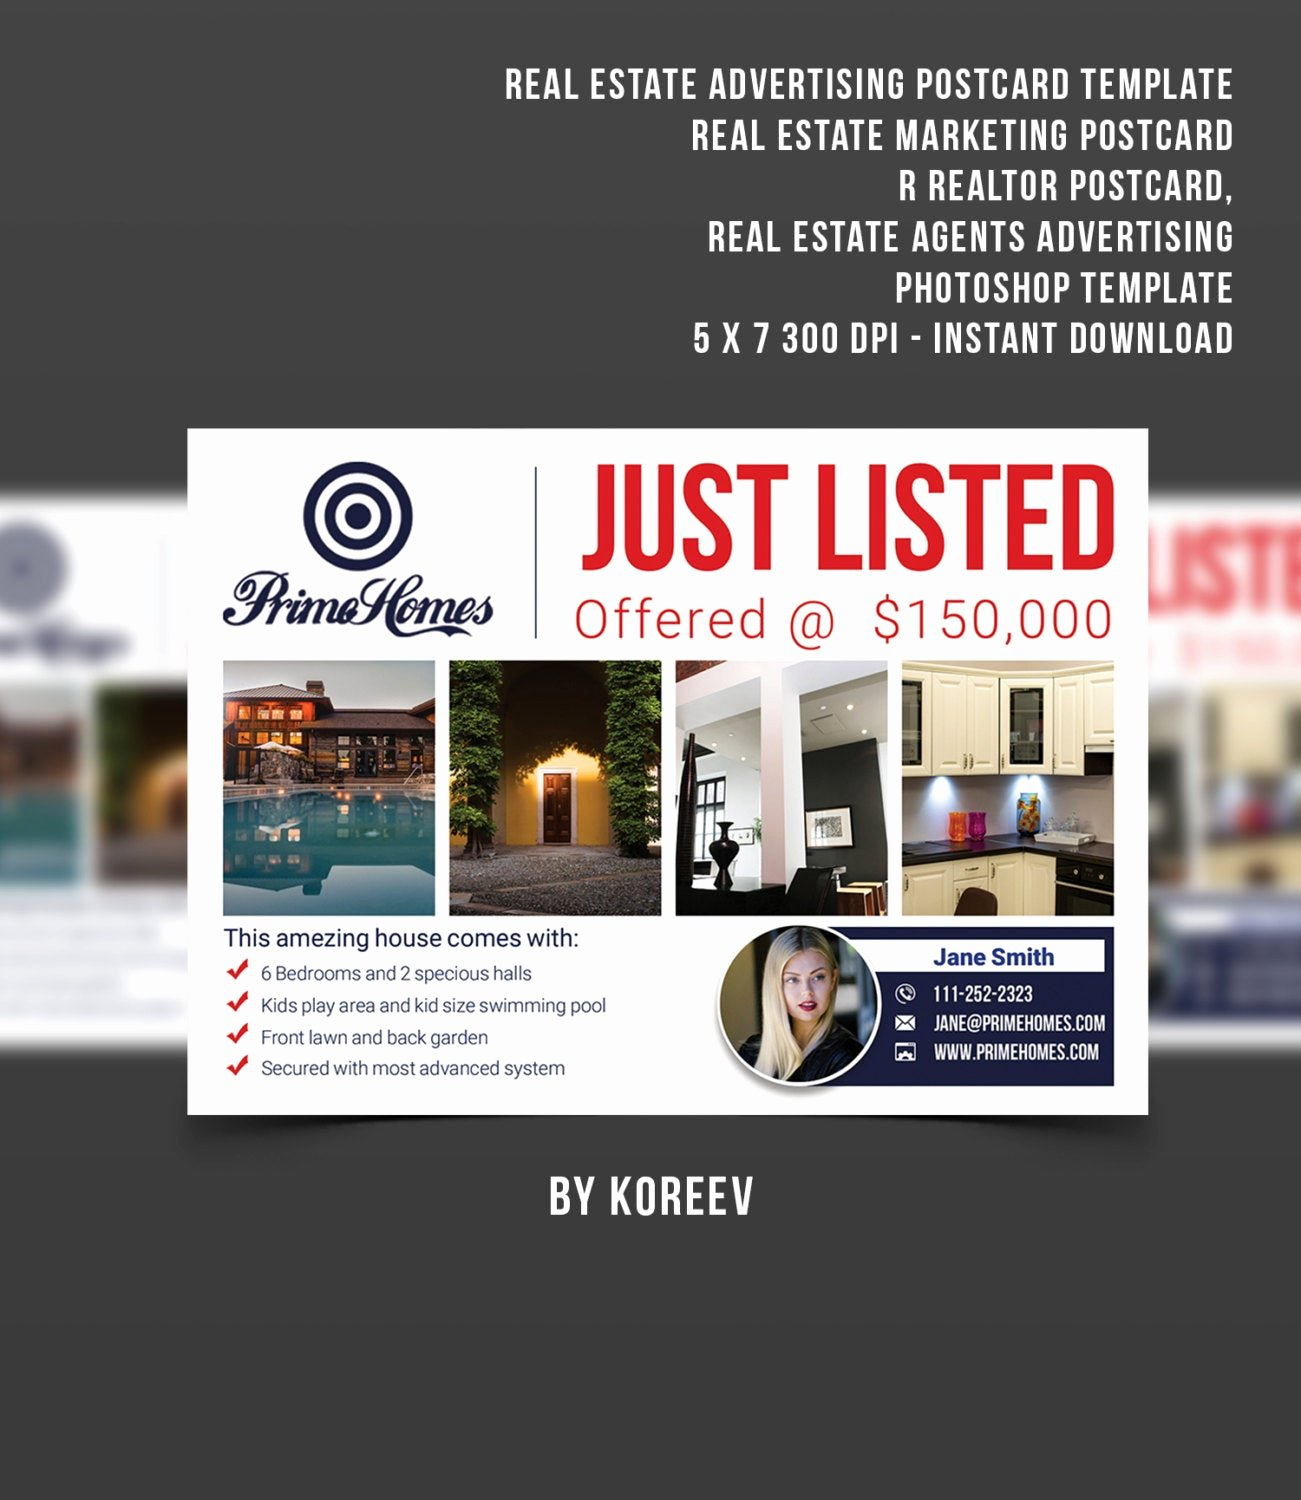 Real Estate Postcards Templates Free Unique Real Estate Advertising Postcard Template Real Estate